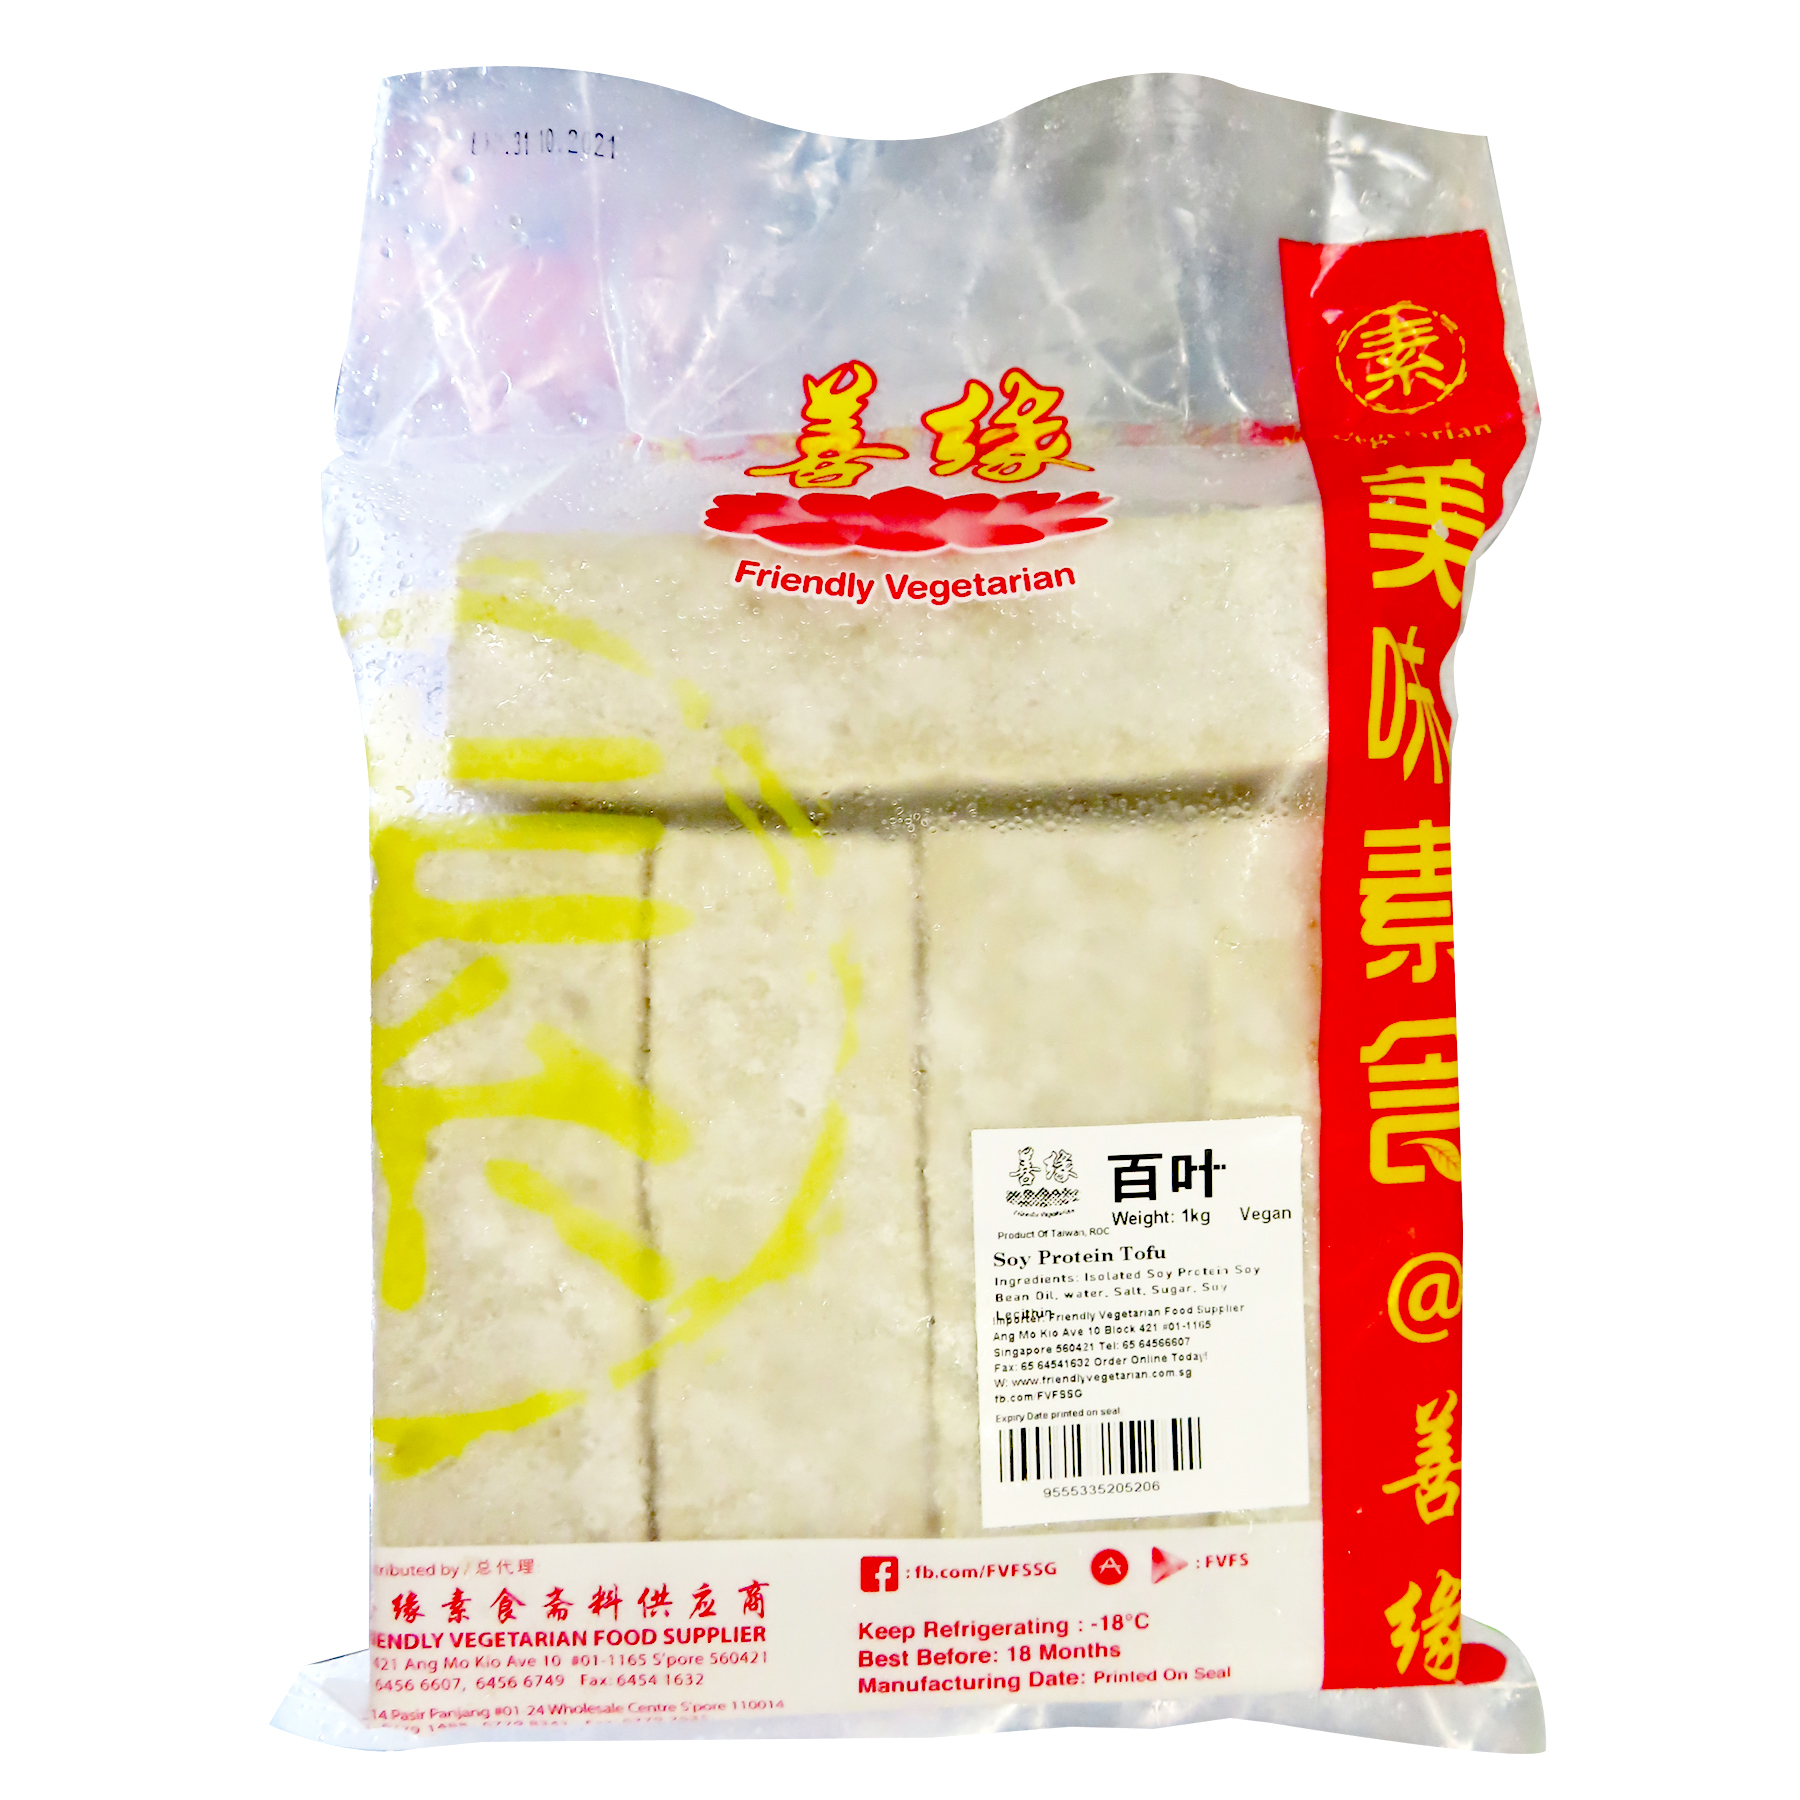 Image Soya Protein Tofu 善缘 - 百叶 (5 pieces) 1000grams